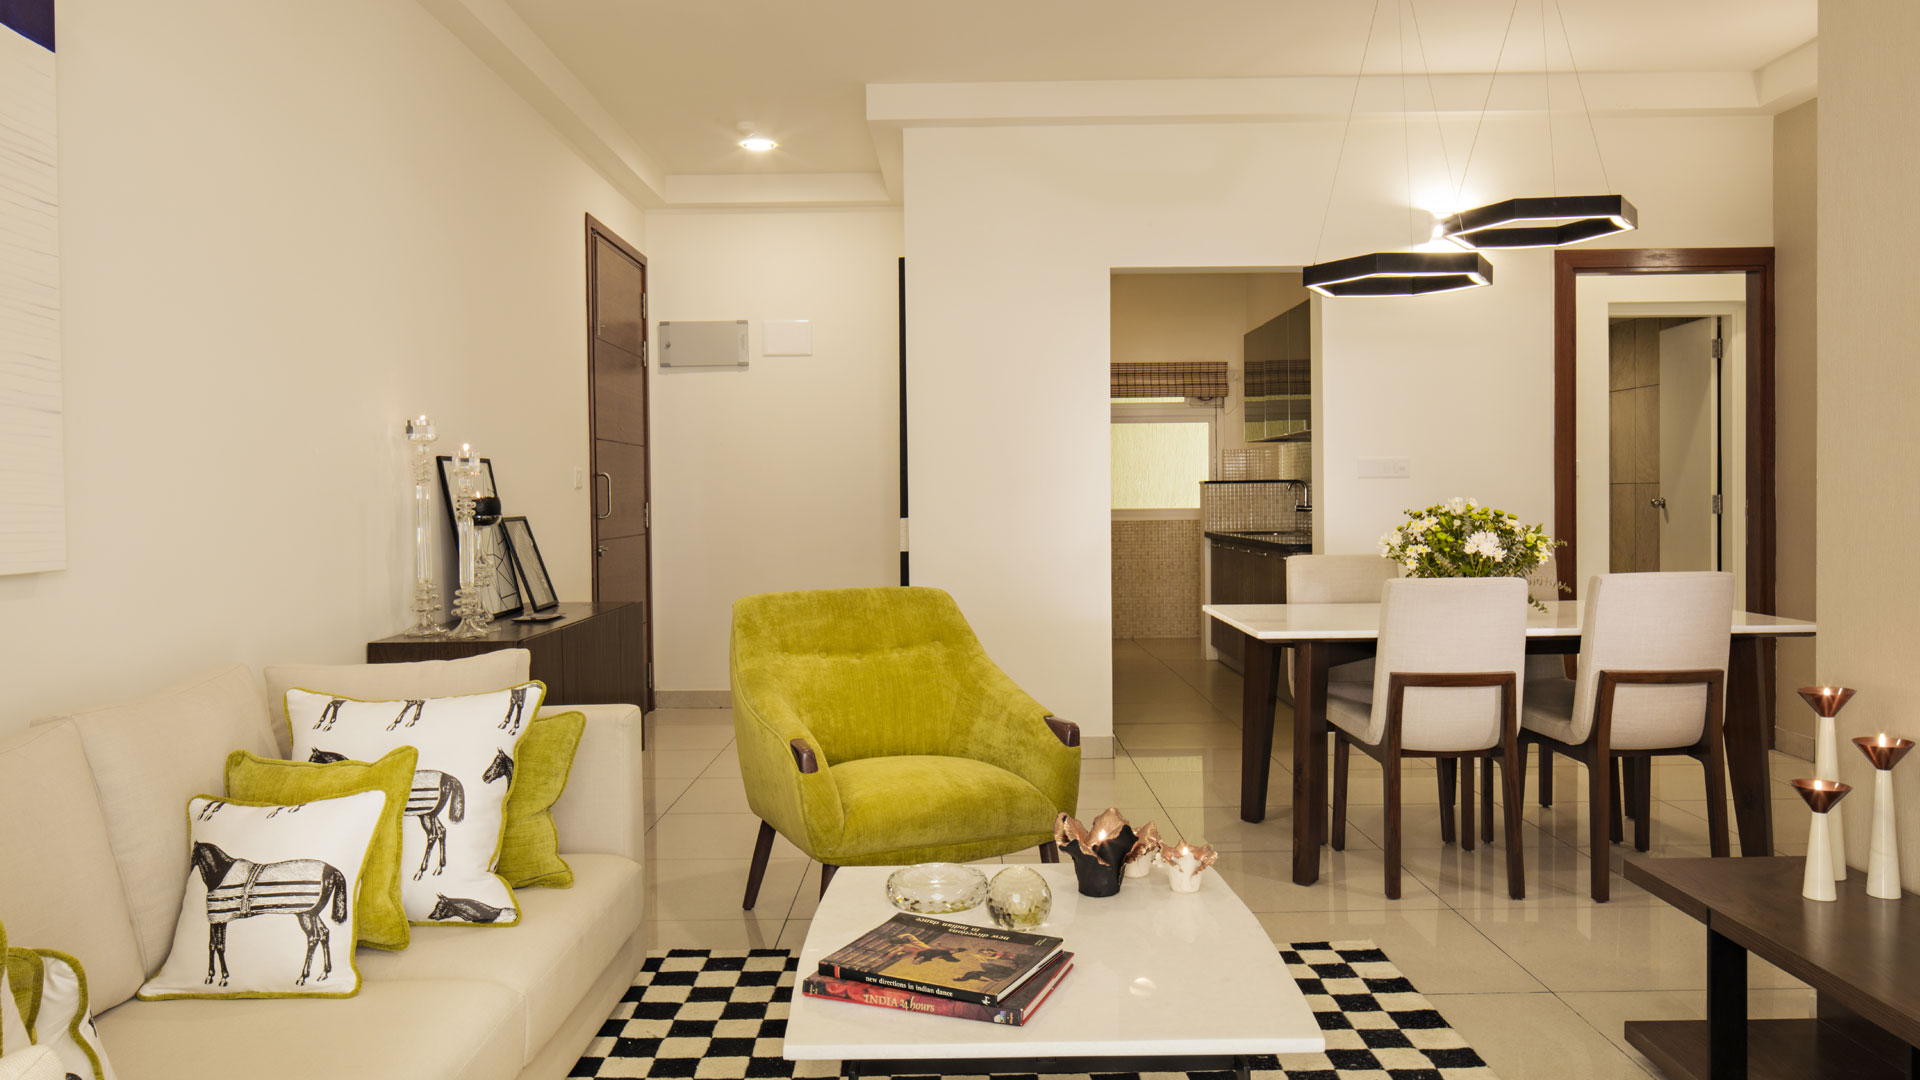 prestige-song-of-the-south-Apartment-in-yelenahalli-Bangalore-Image-04